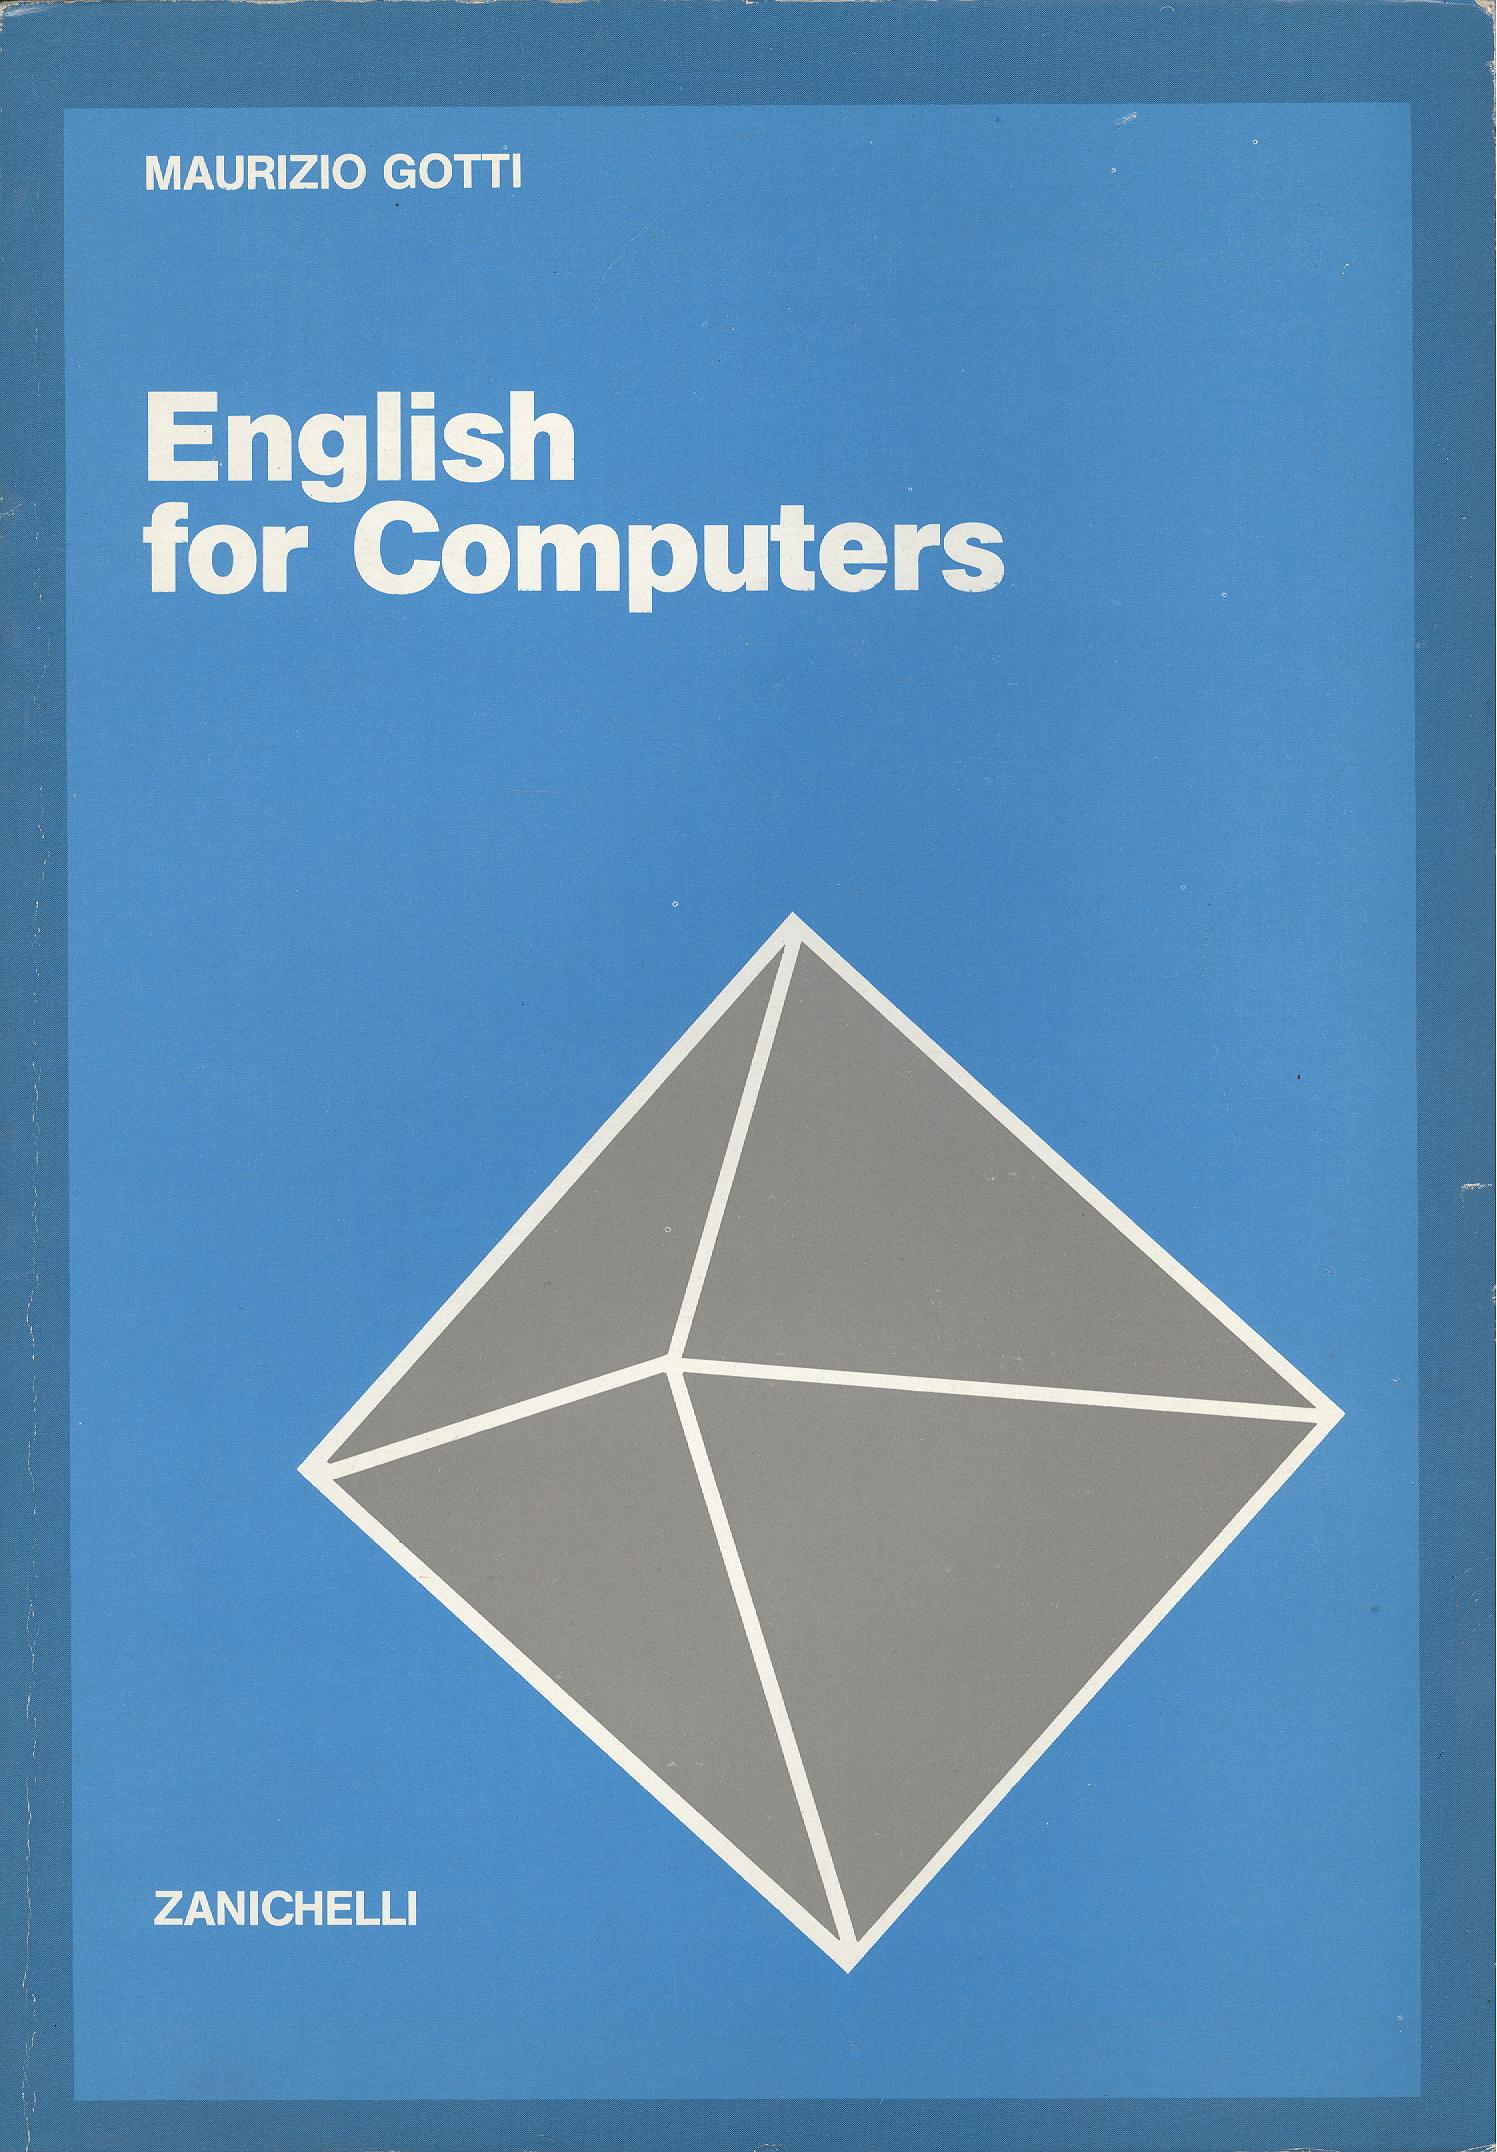 English for Computers